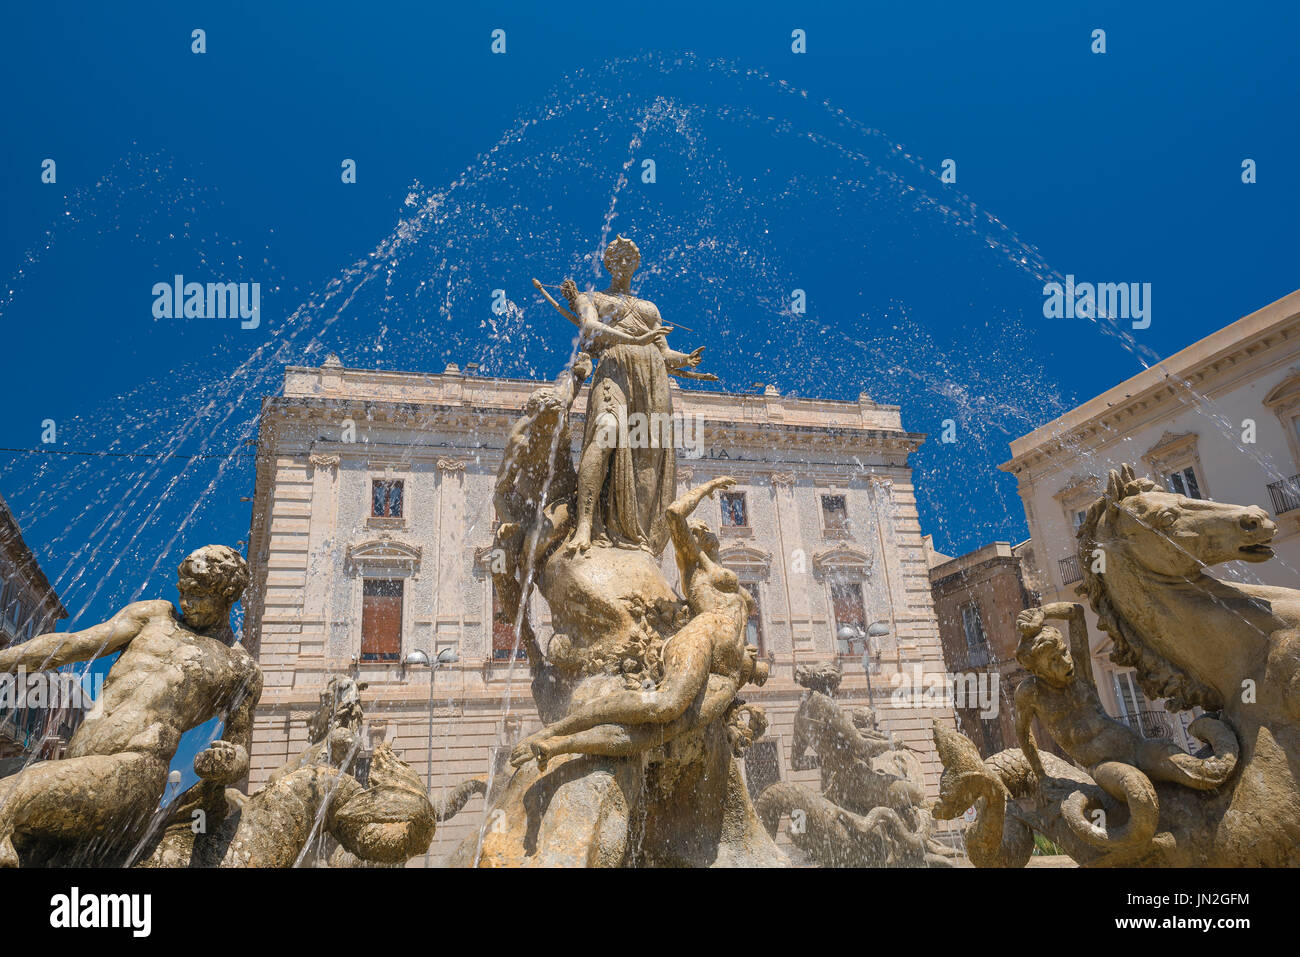 Sicily Baroque fountain, the Fountain of Artemis in the Piazza Archimede in Ortigia,Syracuse,Sicily. - Stock Image